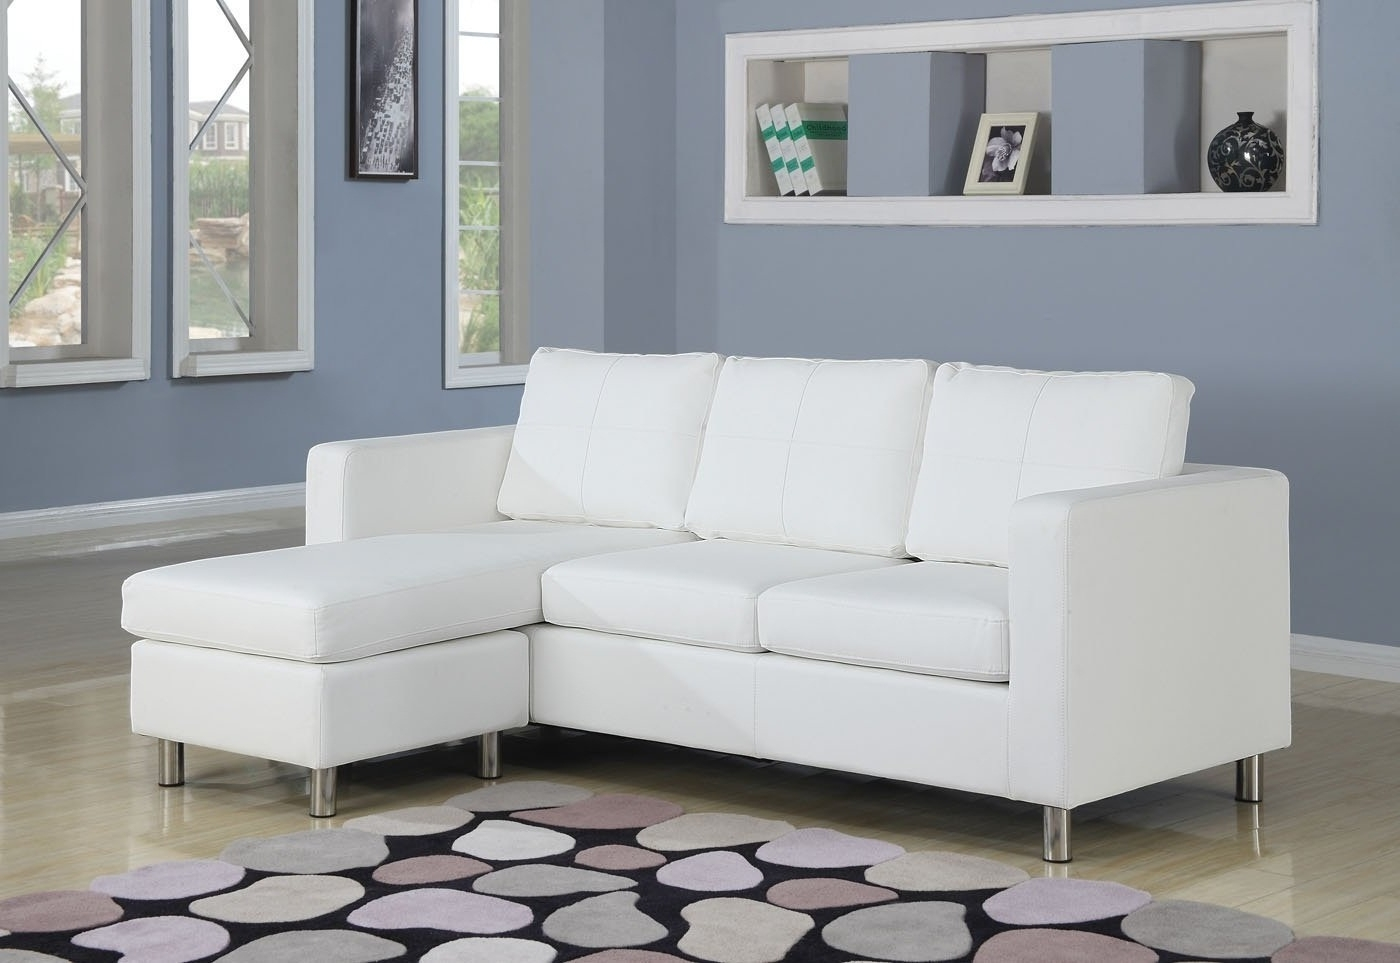 Well Known Tiny Sofas With Best Small Sectional Sofa With Chaise 49 On Sofas And Couches (View 3 of 15)